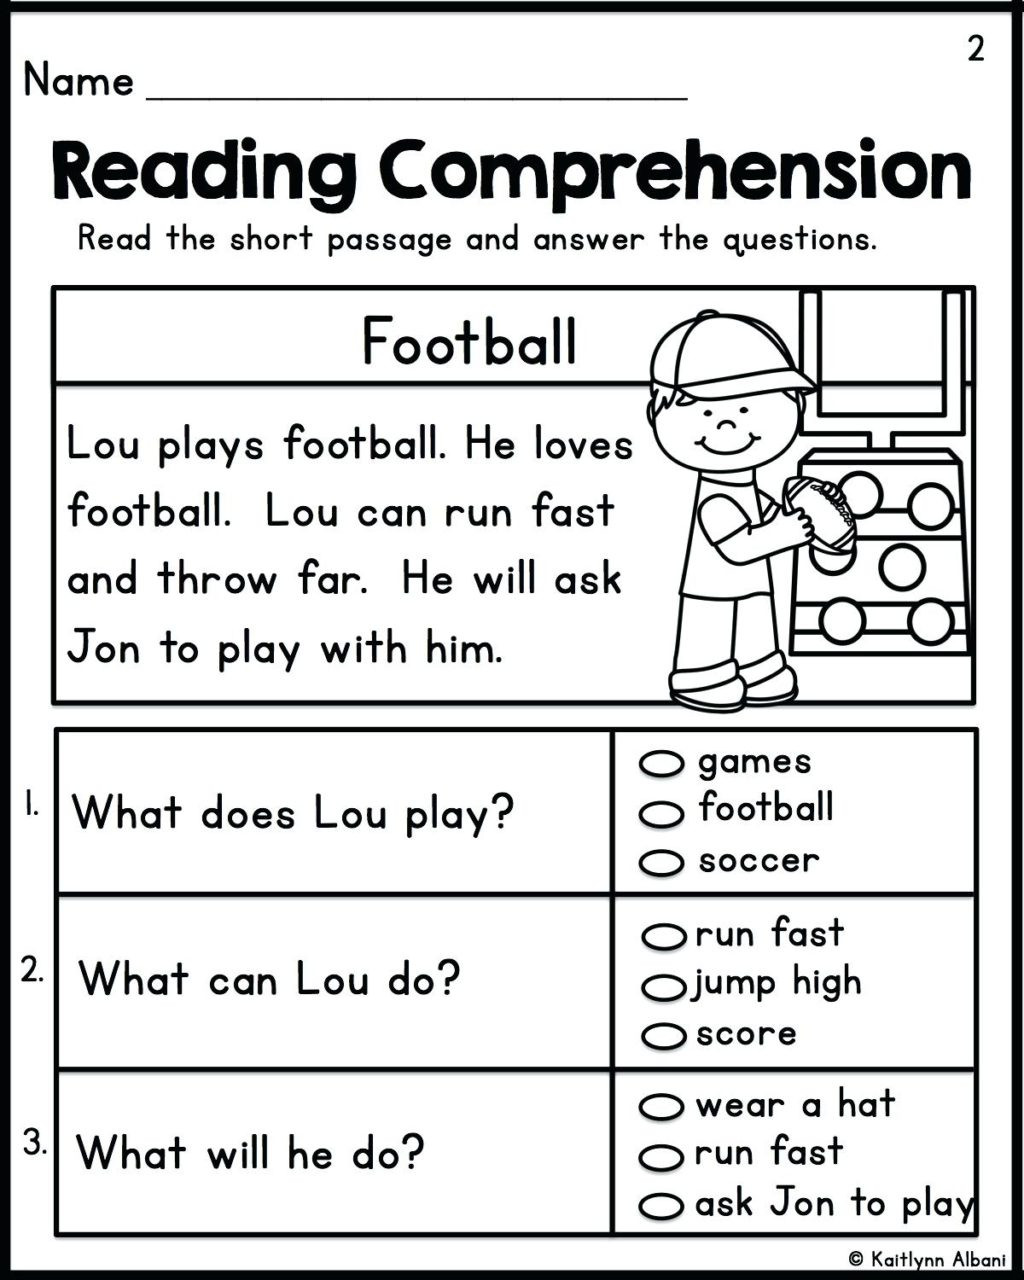 Free 2nd Grade Comprehension Worksheets Worksheet Worksheet Ideas Excelent Free Second Grade